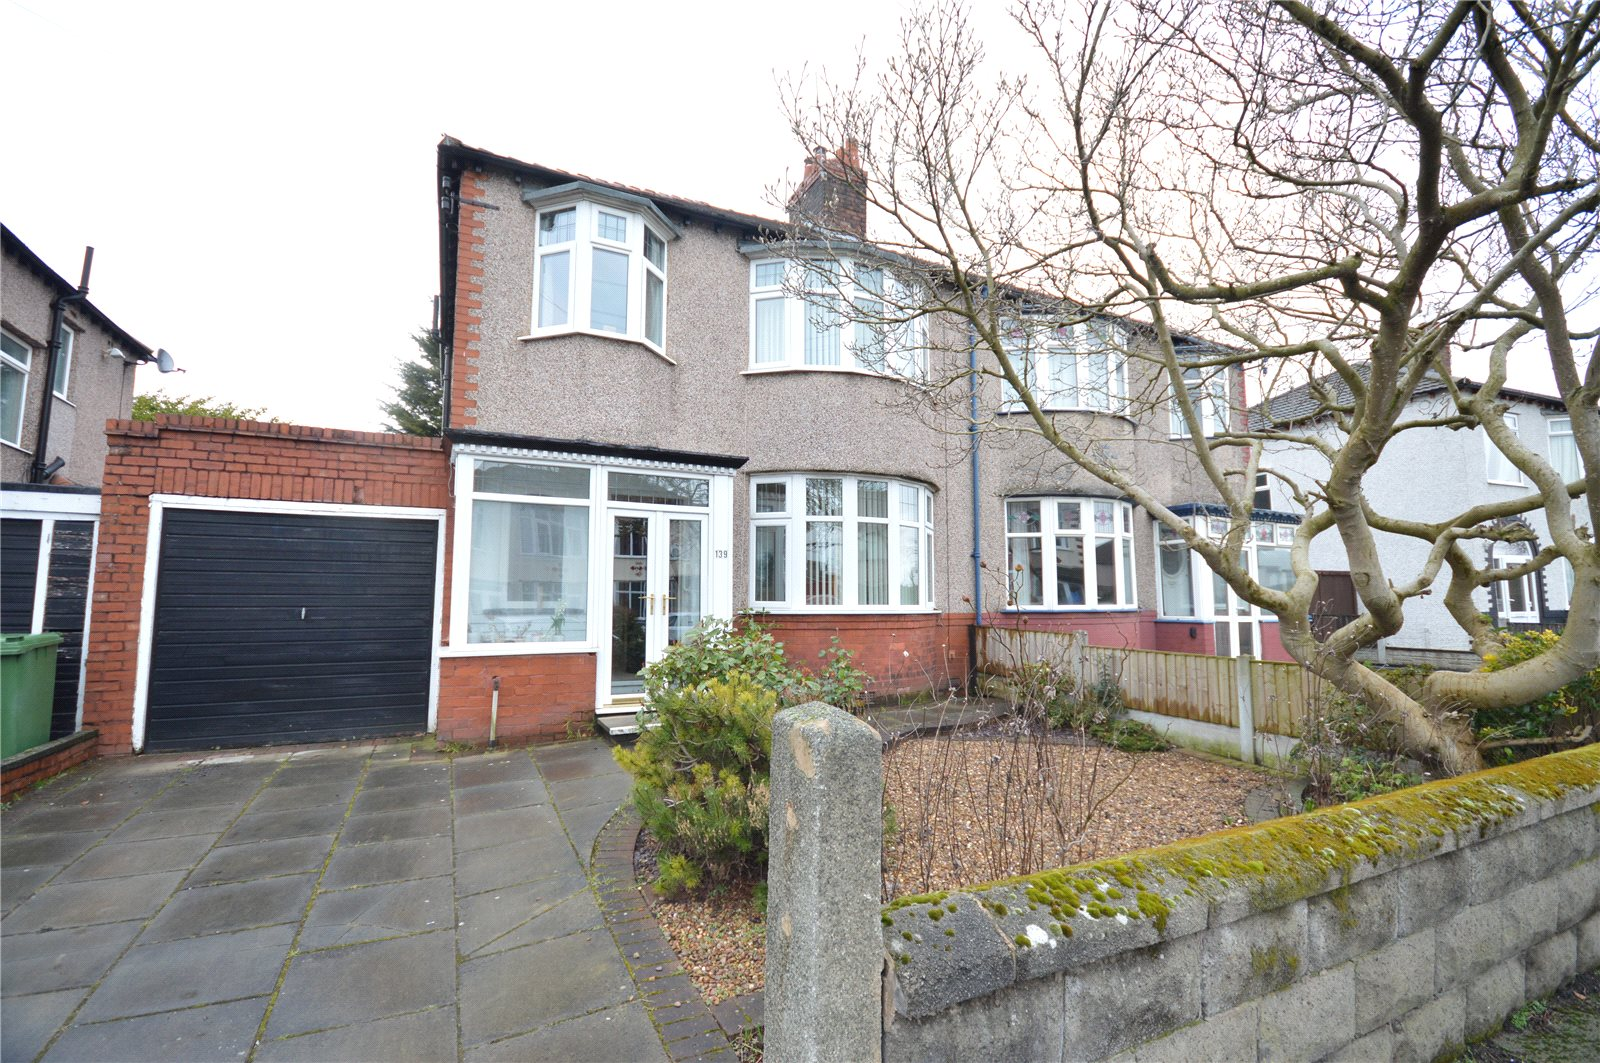 3 Bedrooms Semi Detached House for sale in South Mossley Hill Road, Allerton, Liverpool, L19